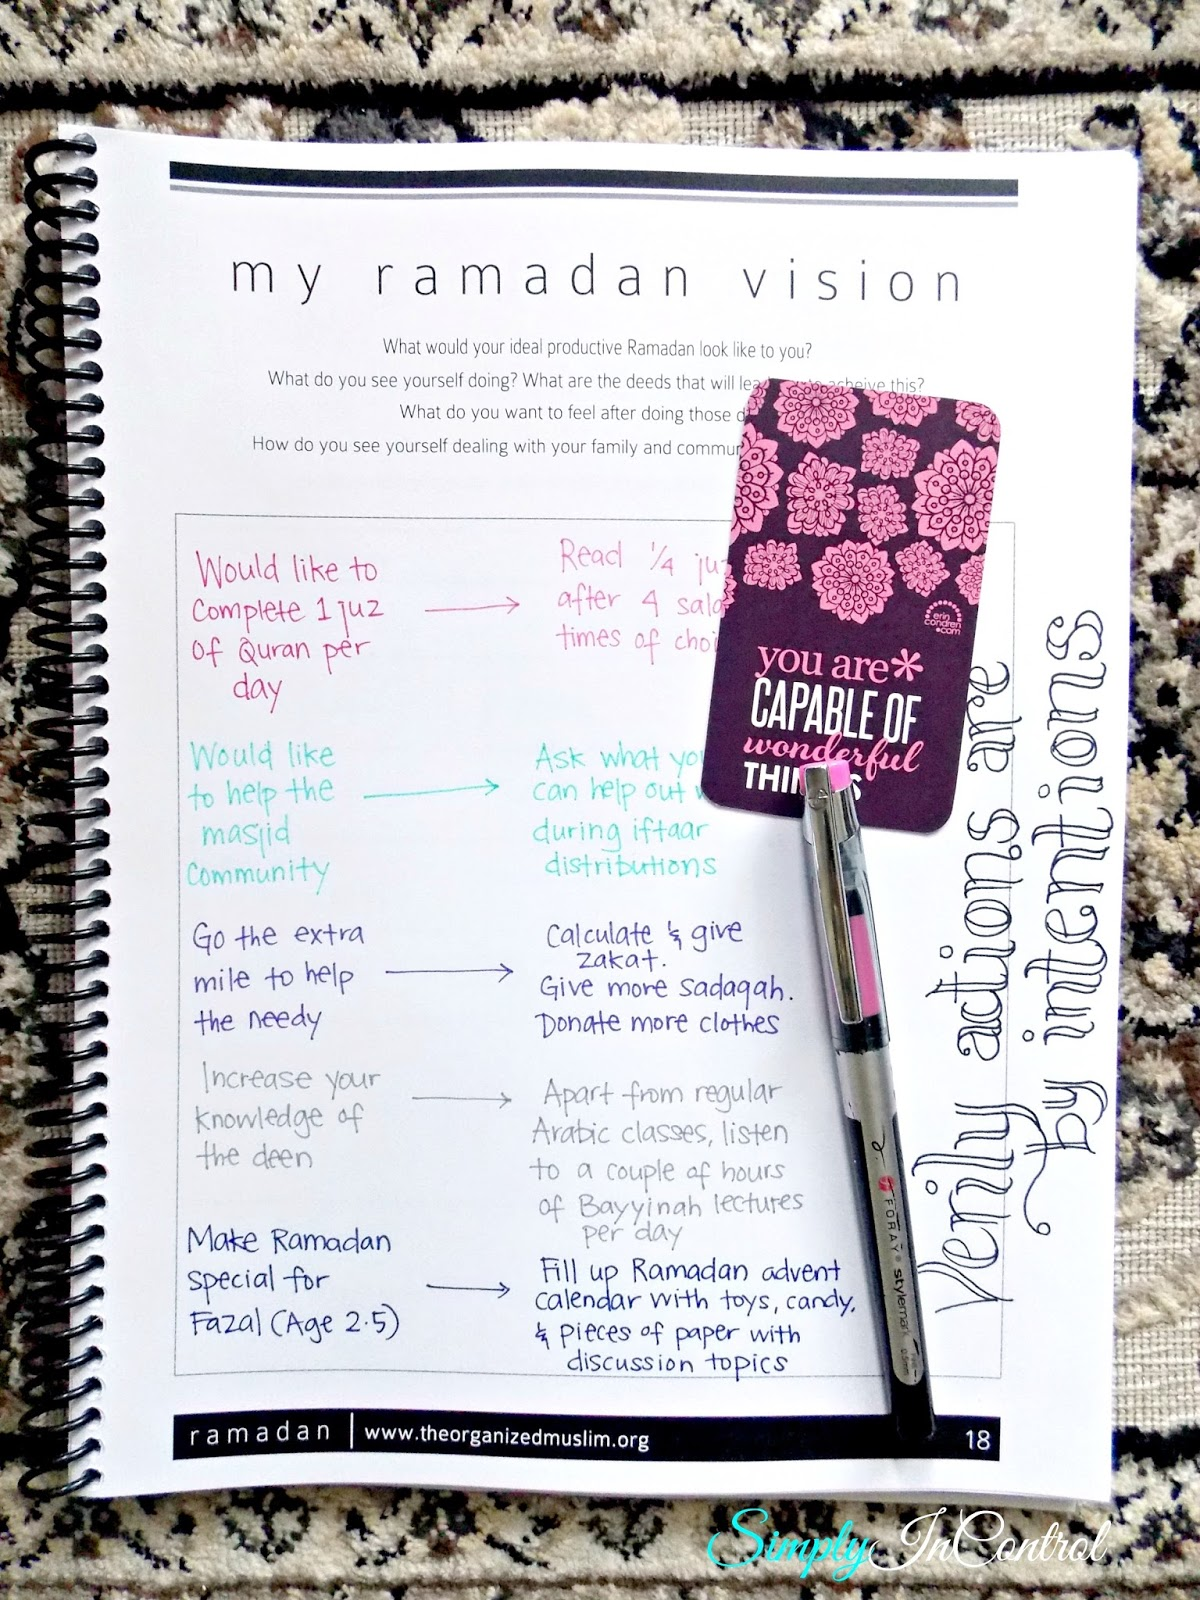 how to stay productive during ramadan